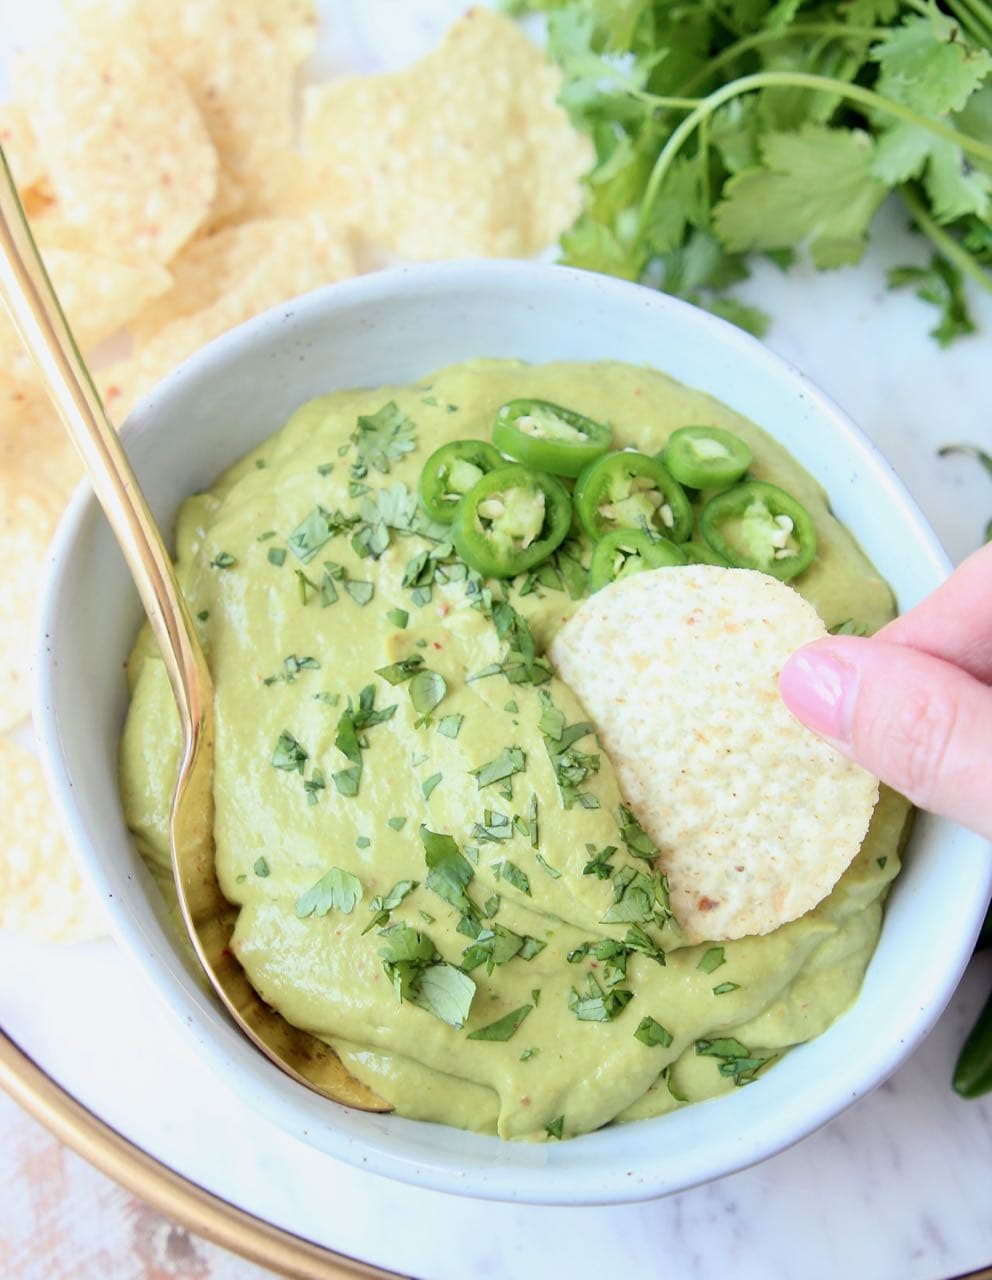 Tortilla chip being dipped into a bowl of avocado salsa